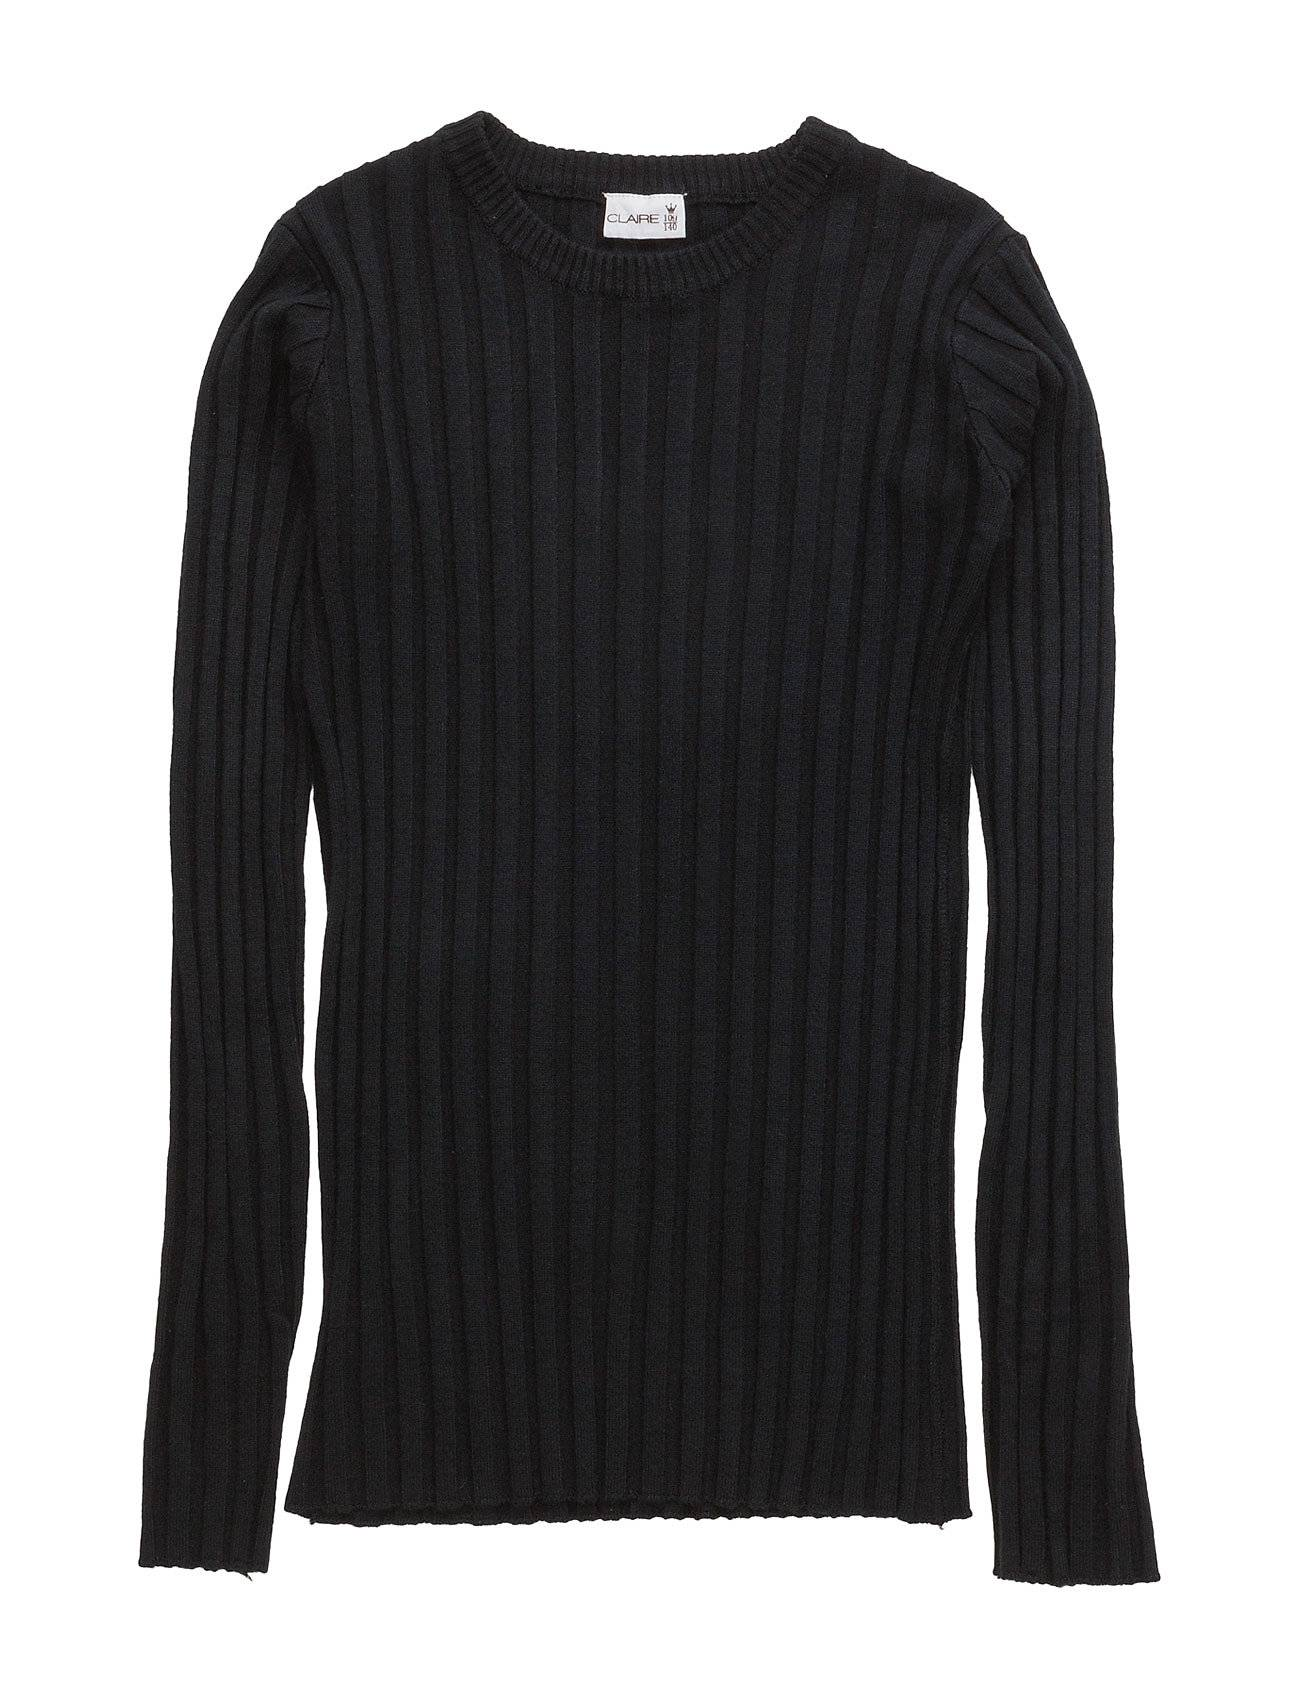 Hust & Claire Knit Pullover